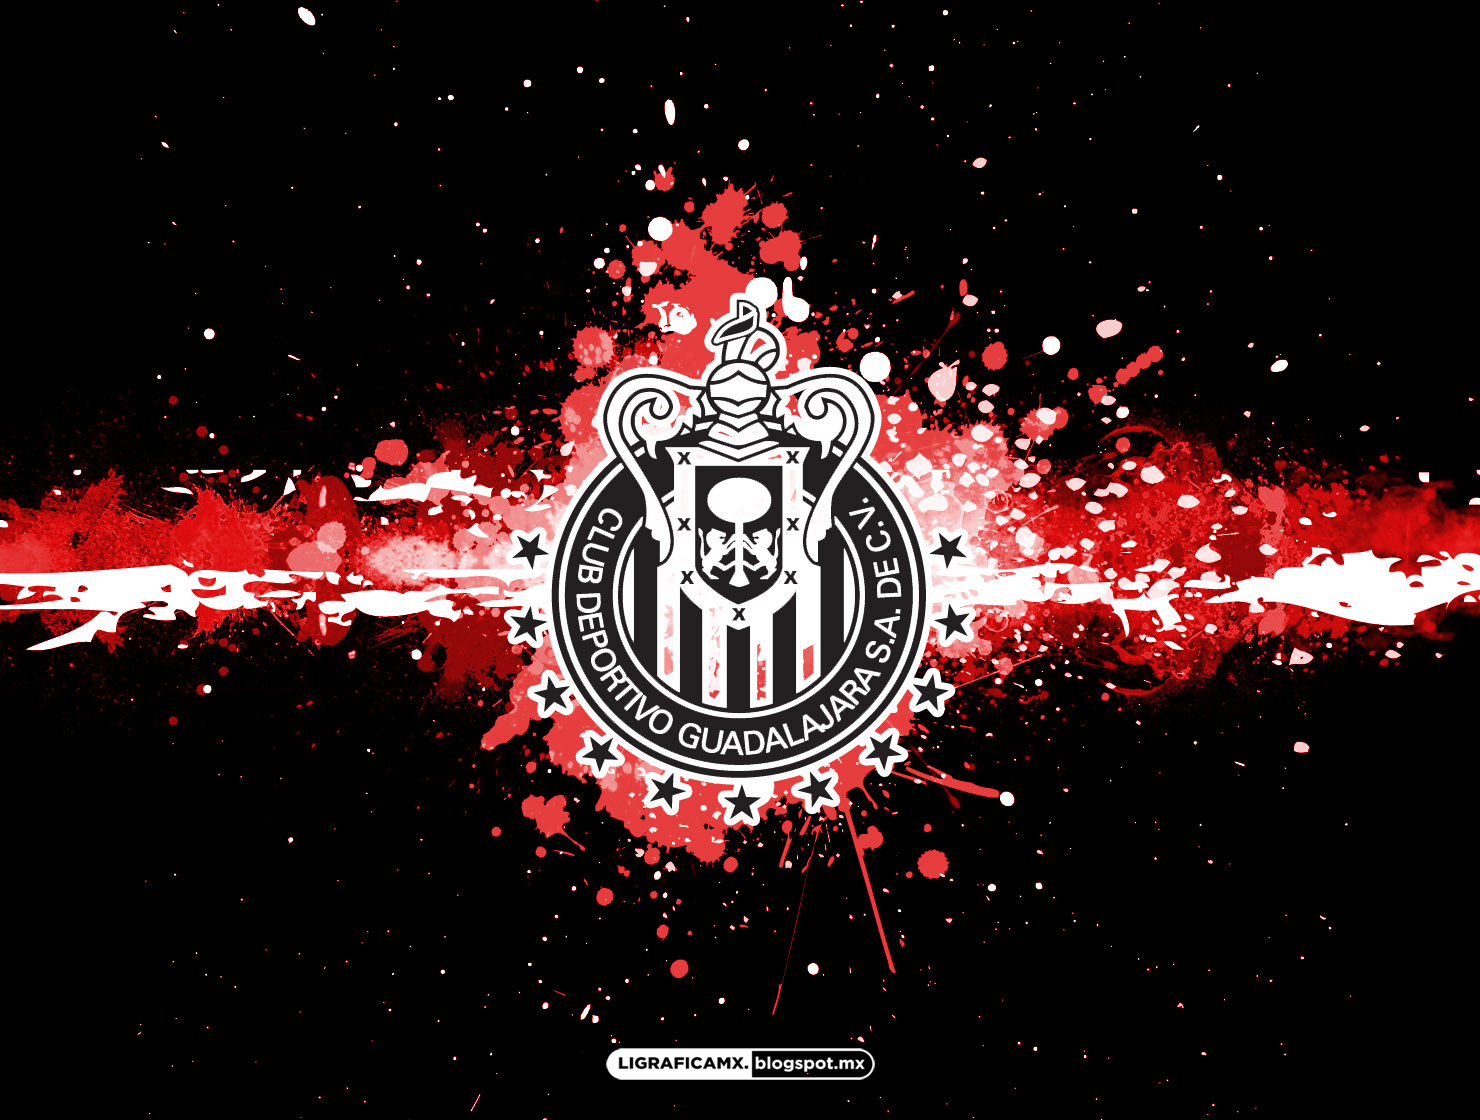 Chivas 2015 wallpaper wallpapersafari view 0 voltagebd